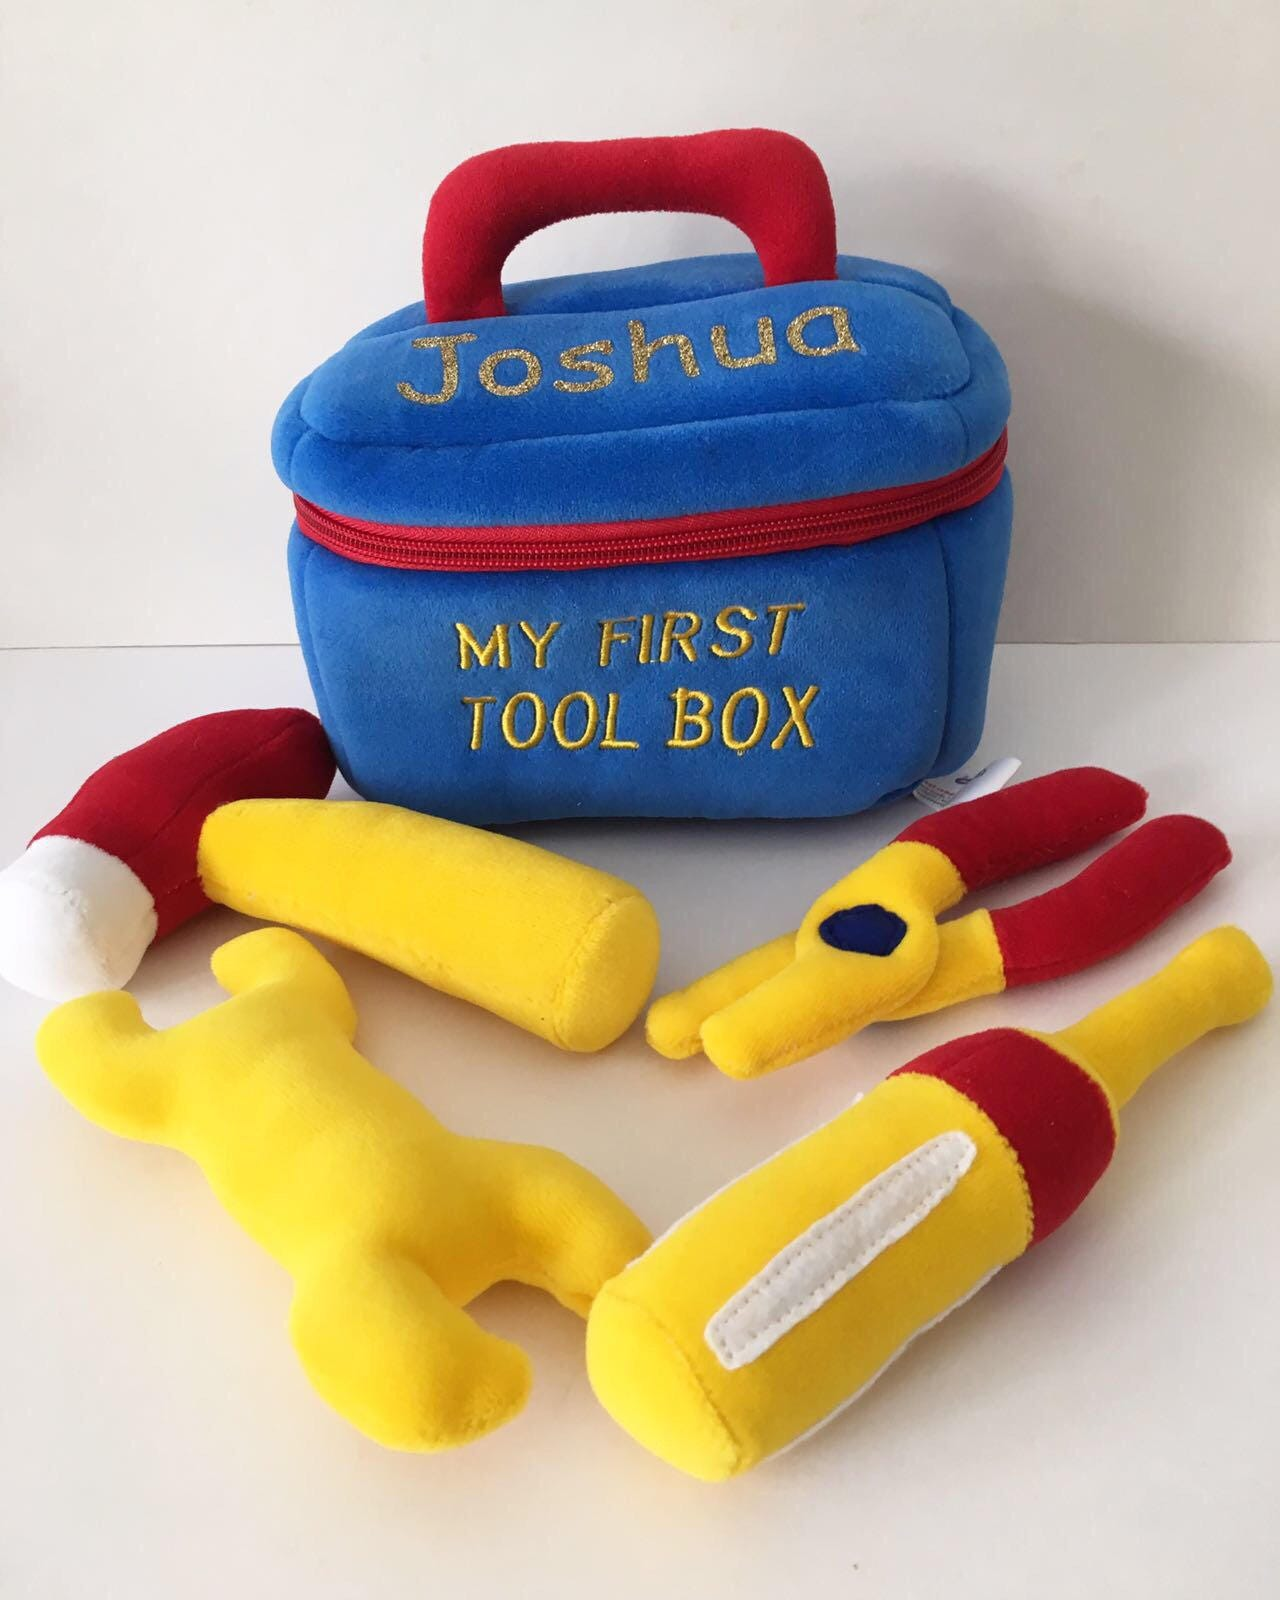 My first tool box soft toy baby toy personalised soft toy box